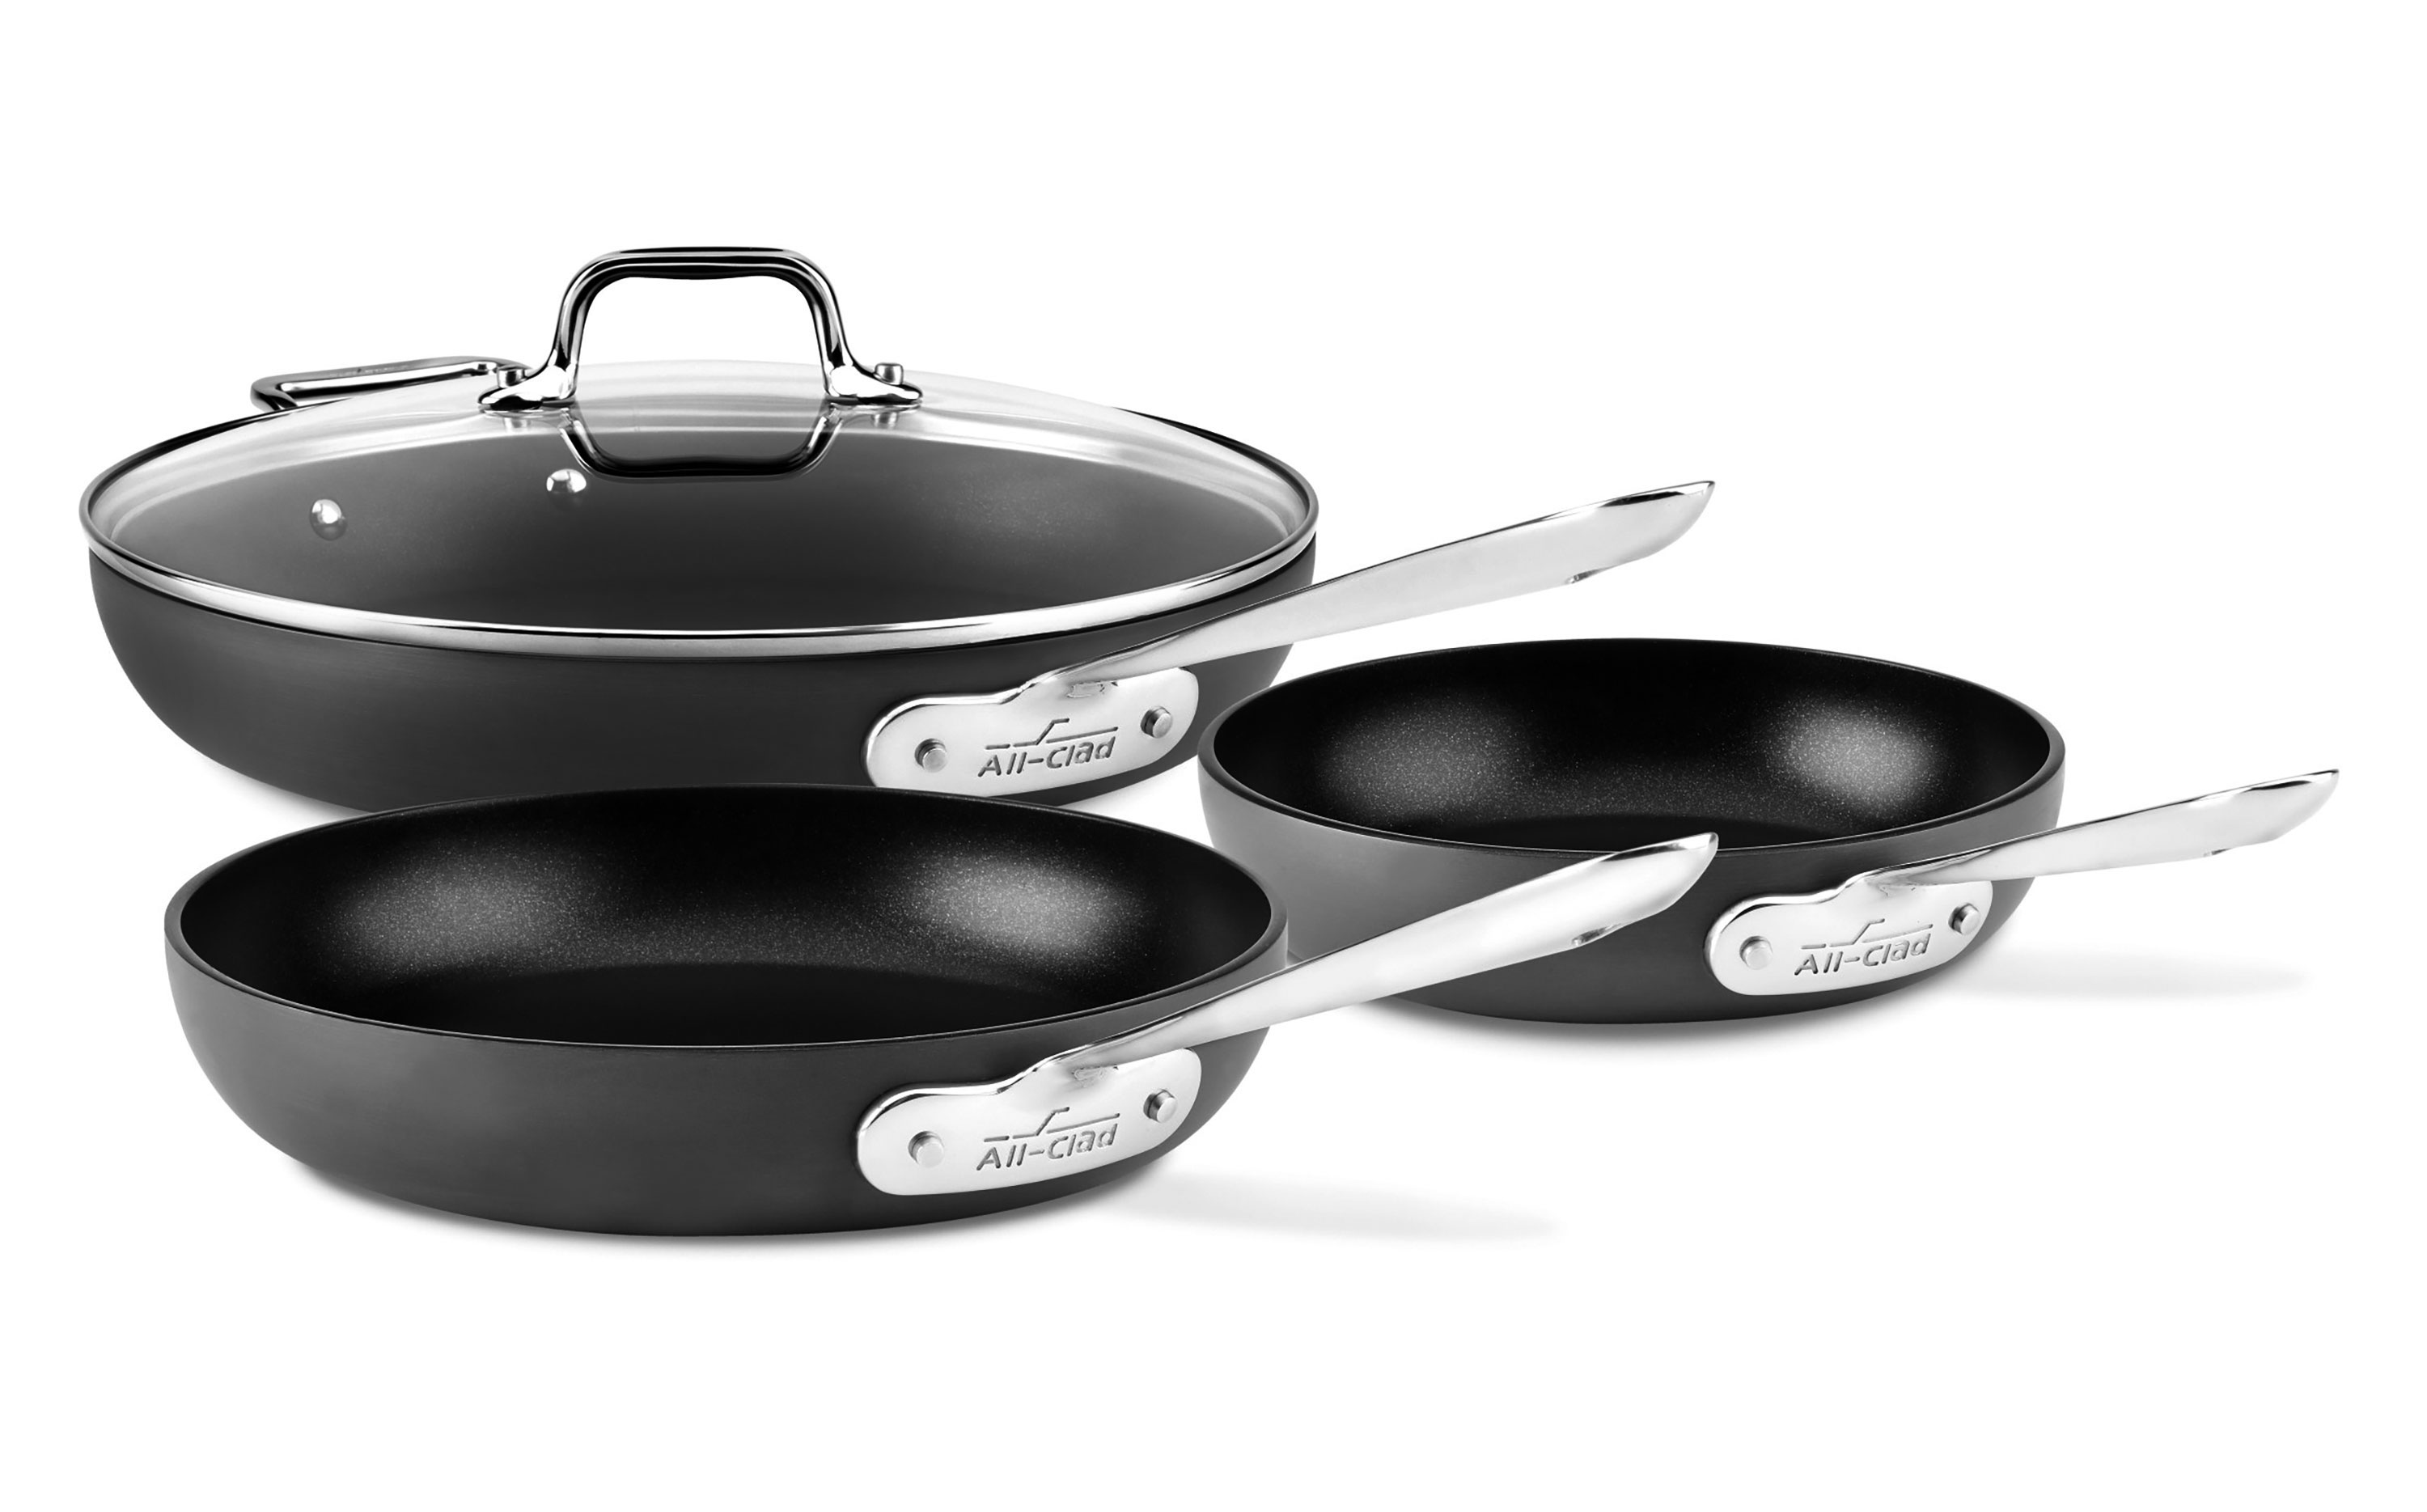 All Clad Nonstick Fry Pans Set Of 3 Ha1 Skillets With